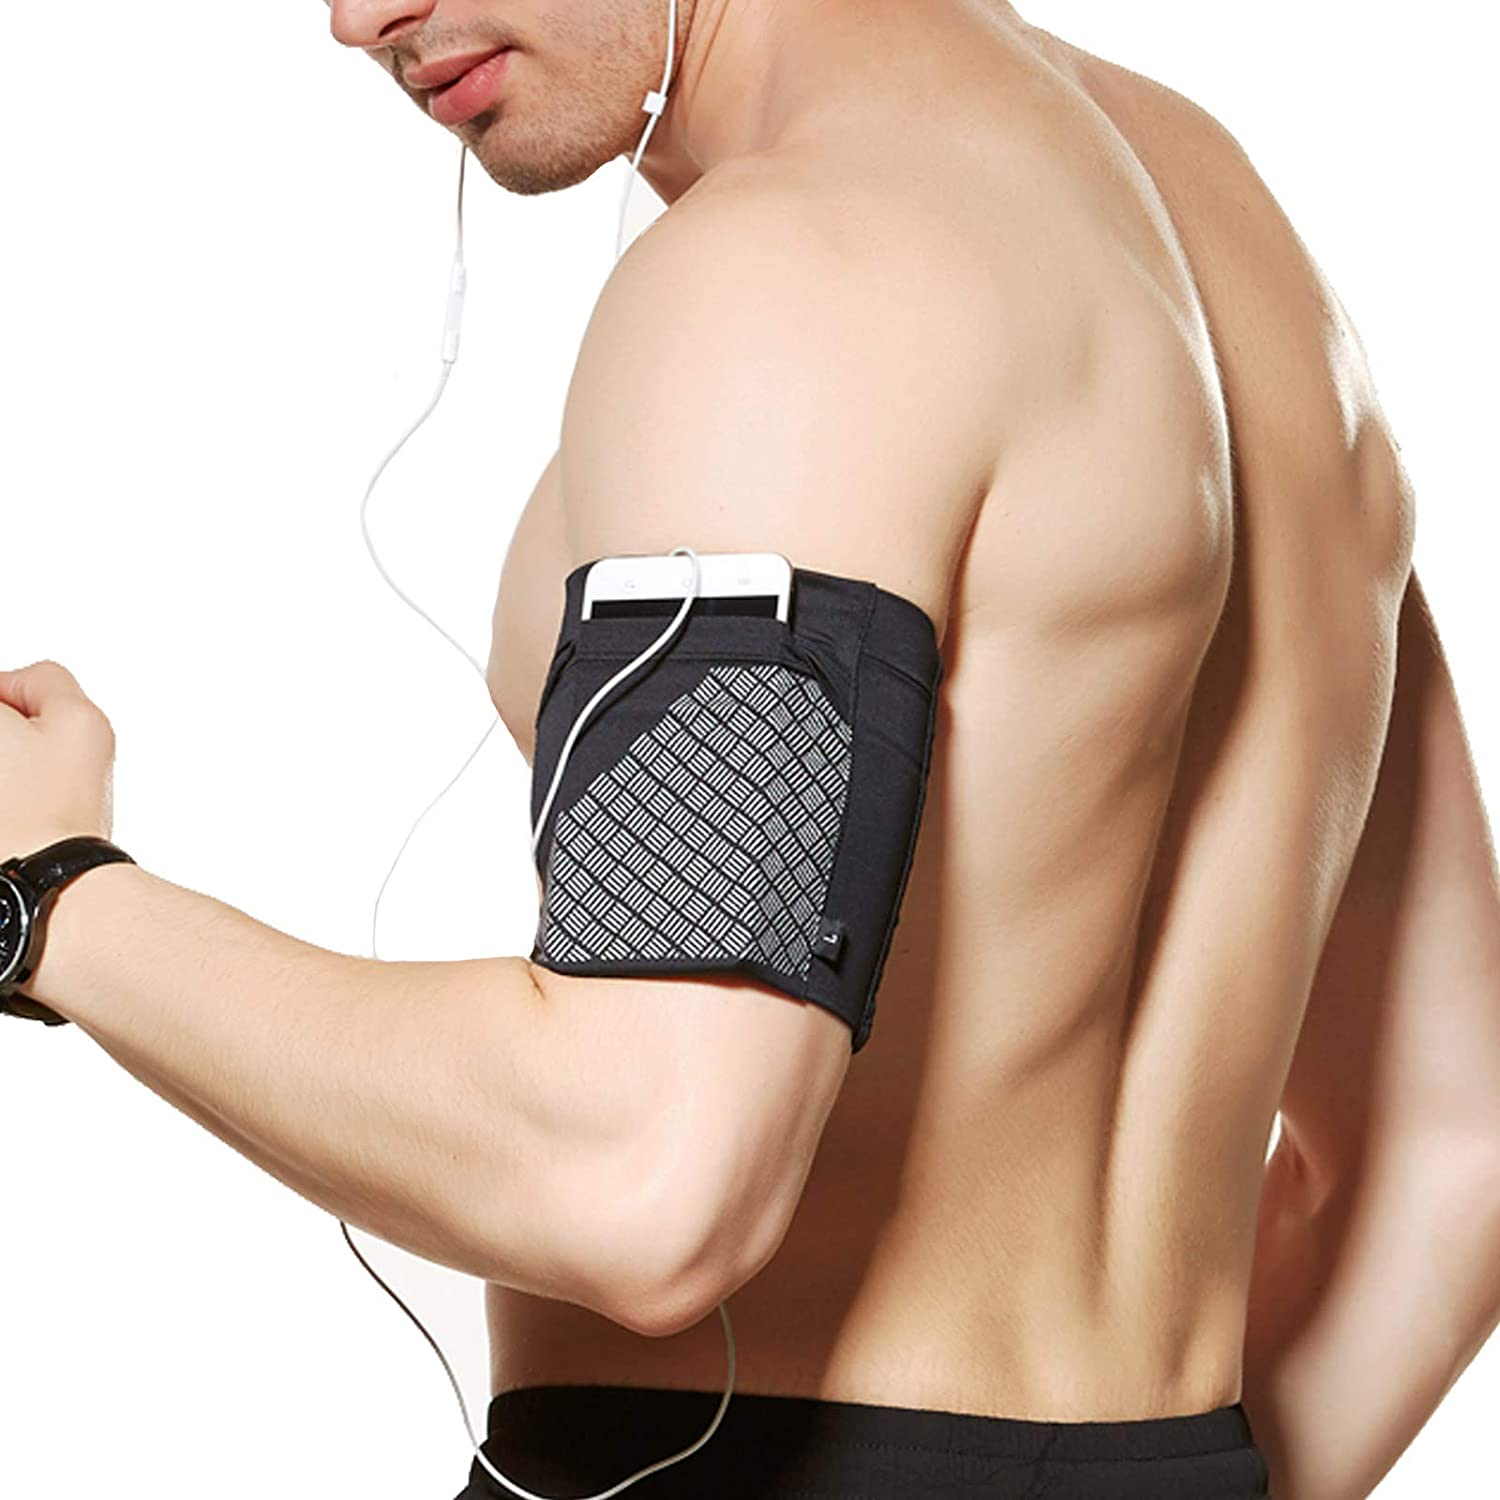 Ailzos Cell Phone Armband for Running, Universal Sports Armband for Phones Under 6